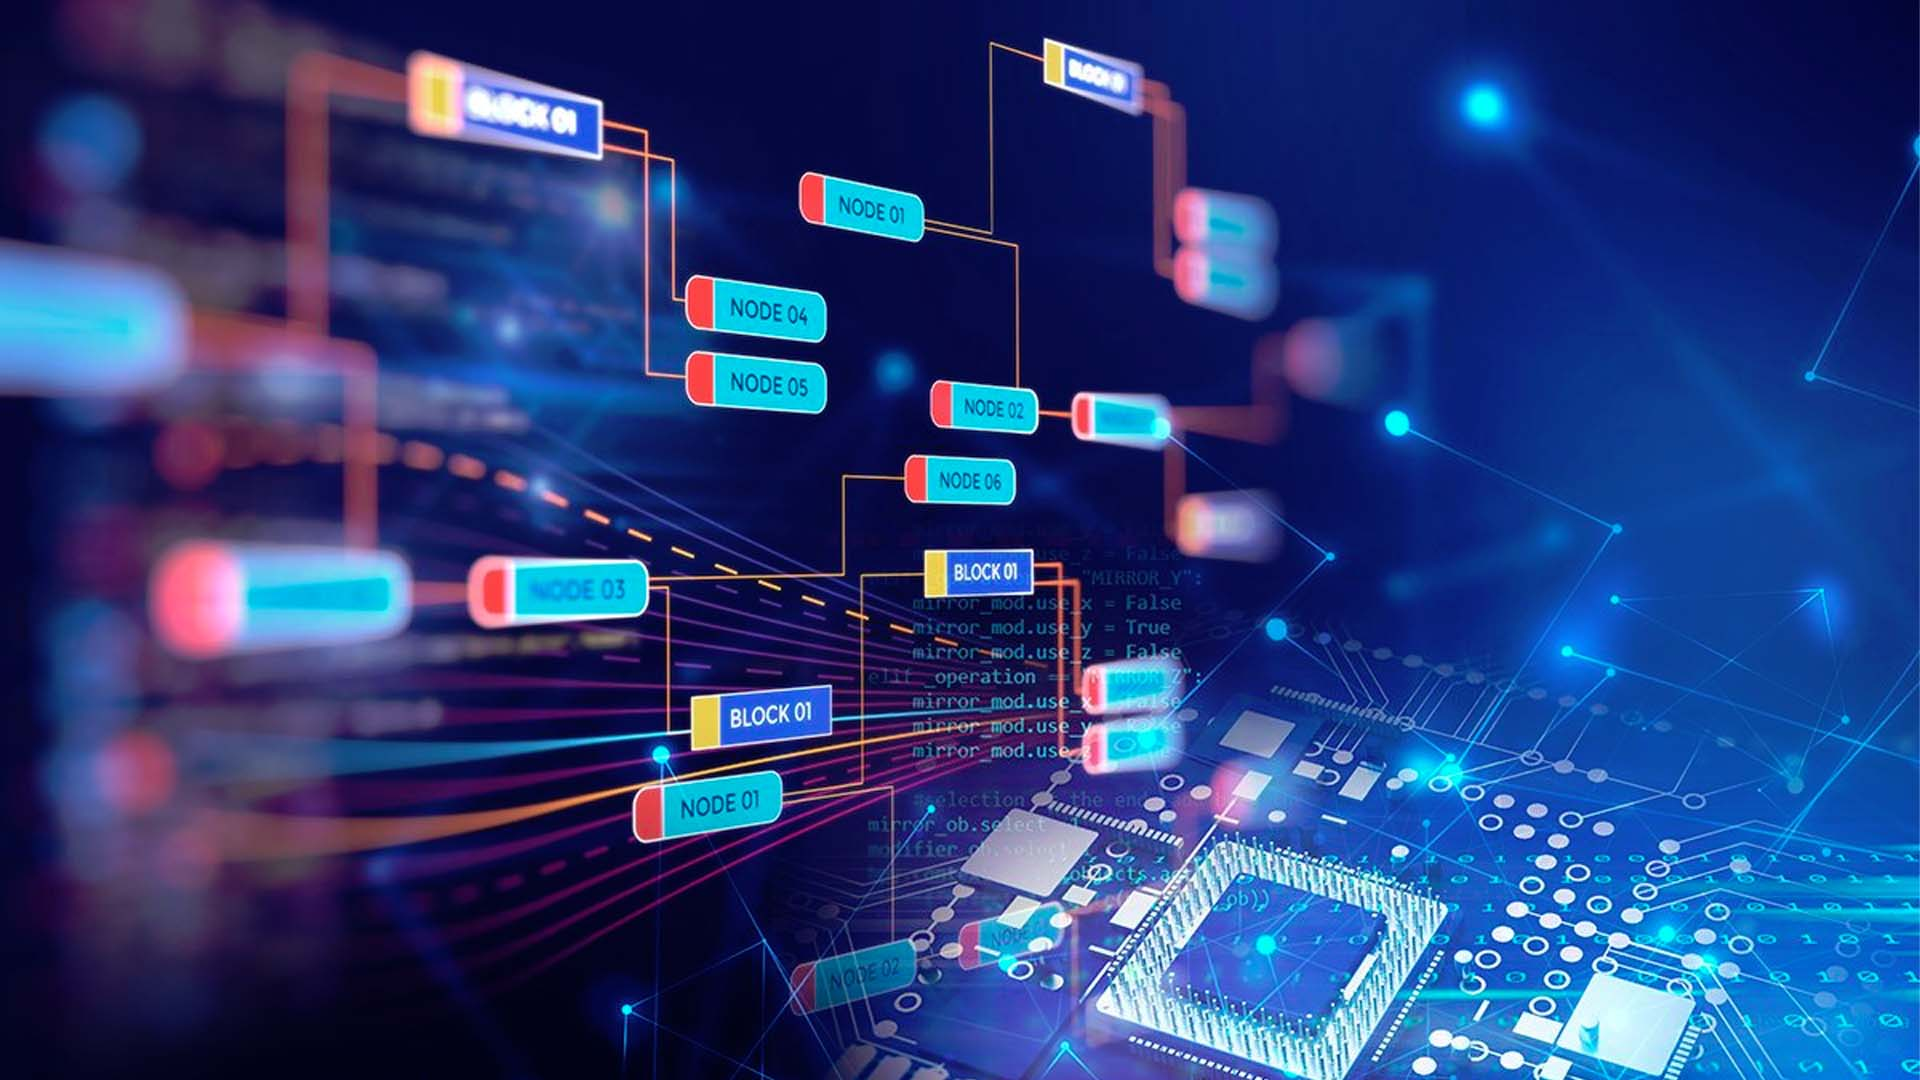 MIT Technology Review: Blockchain Will Become Normalized in 2019